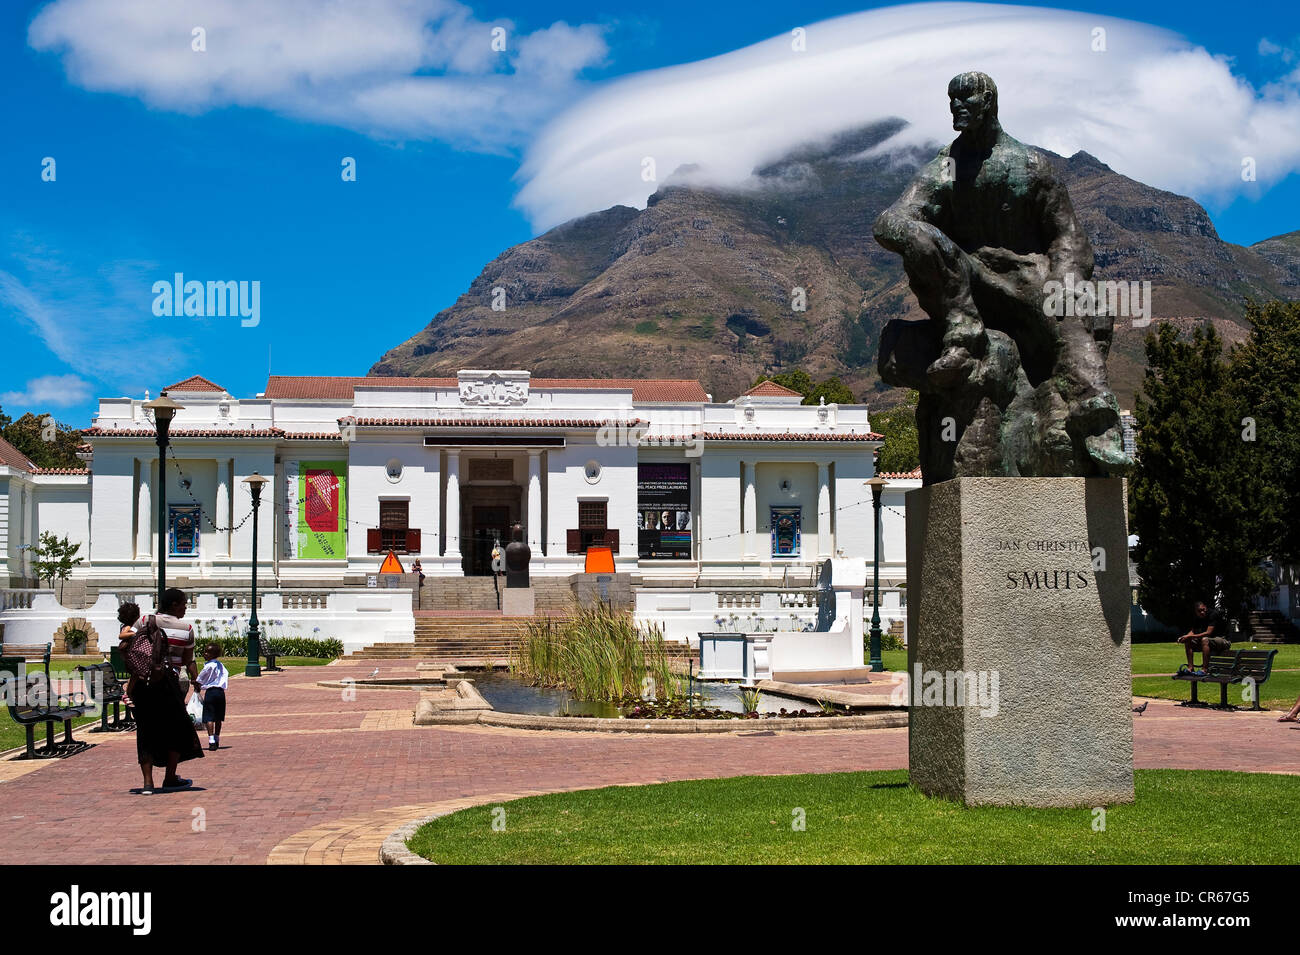 South Africa, Western Cape, Cape Town, the Company's Garden, the Iziko South African National Gallery - Stock Image